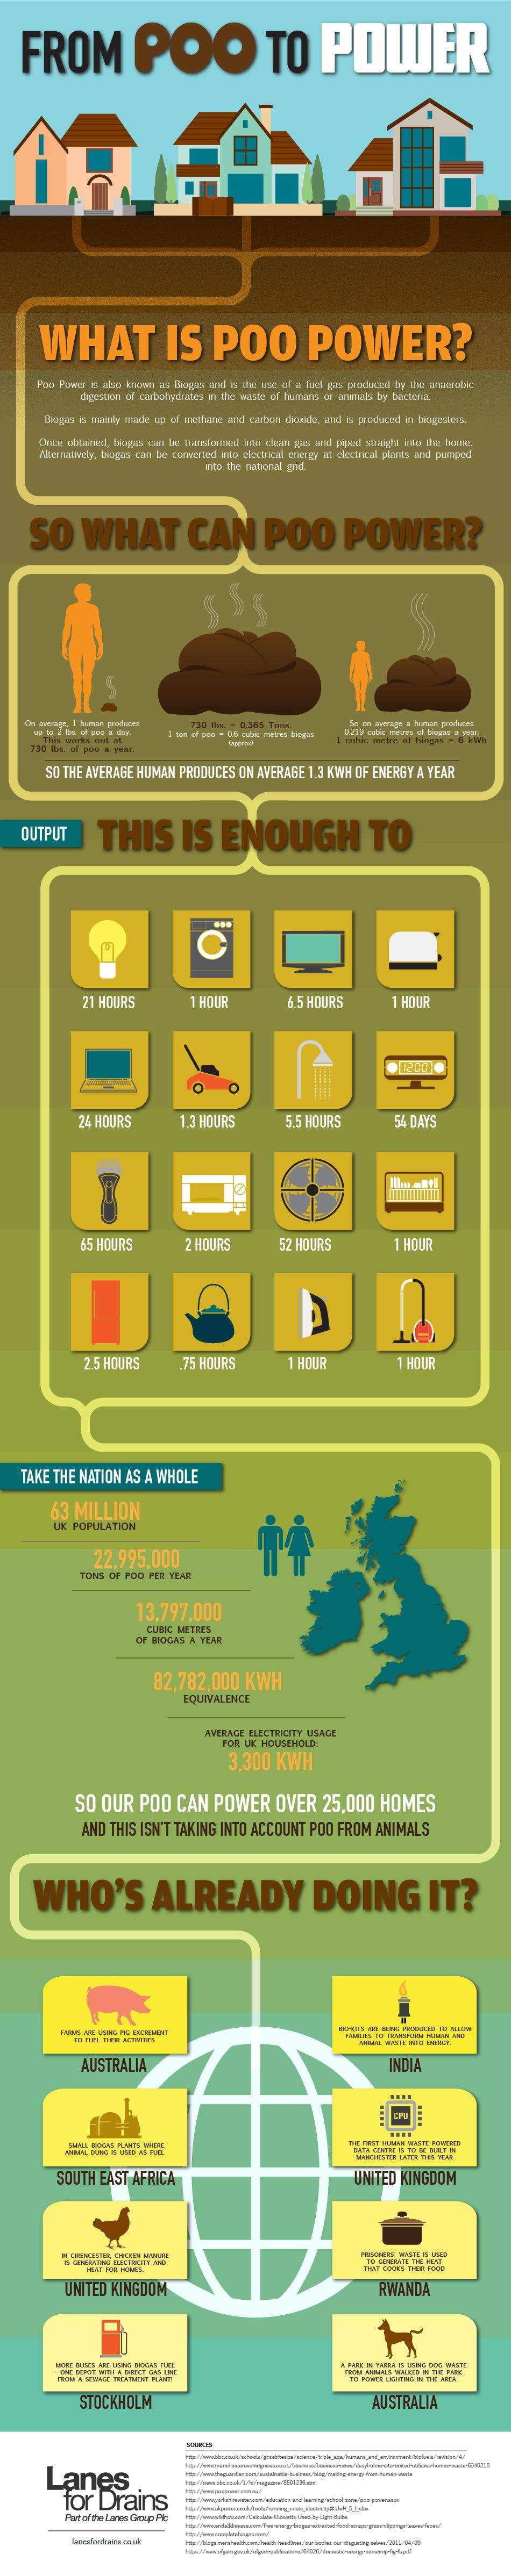 Infographic that demonstrates poo power. Electric power generated from poo!